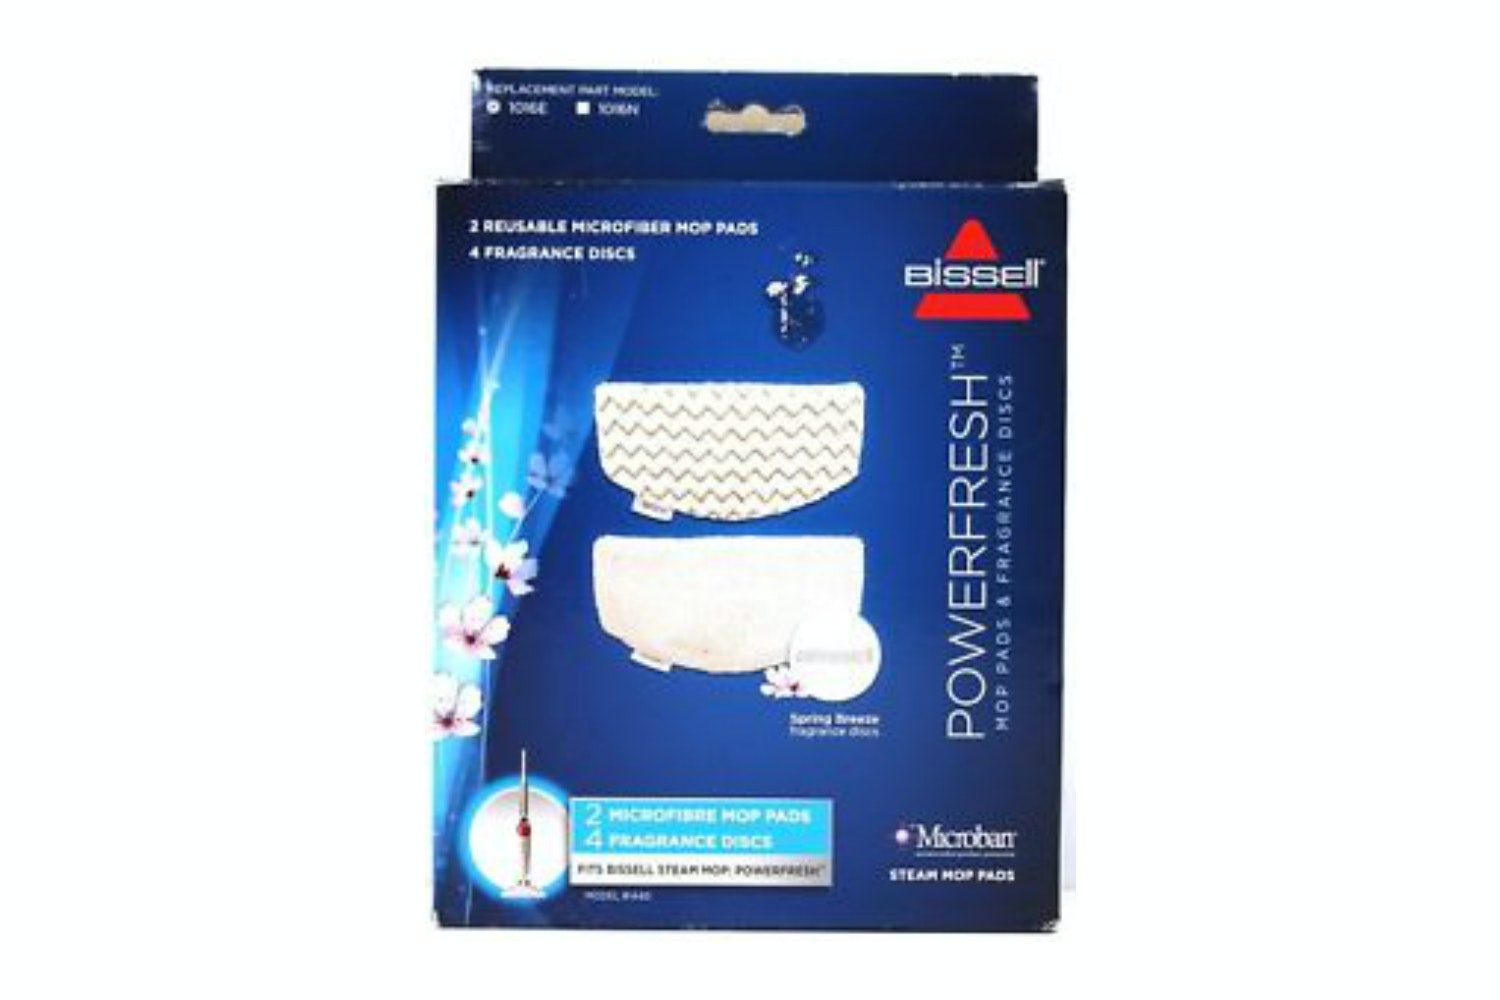 Bissell Power Fresh Steam Mop Pads and Fragrance Discs | 1016E